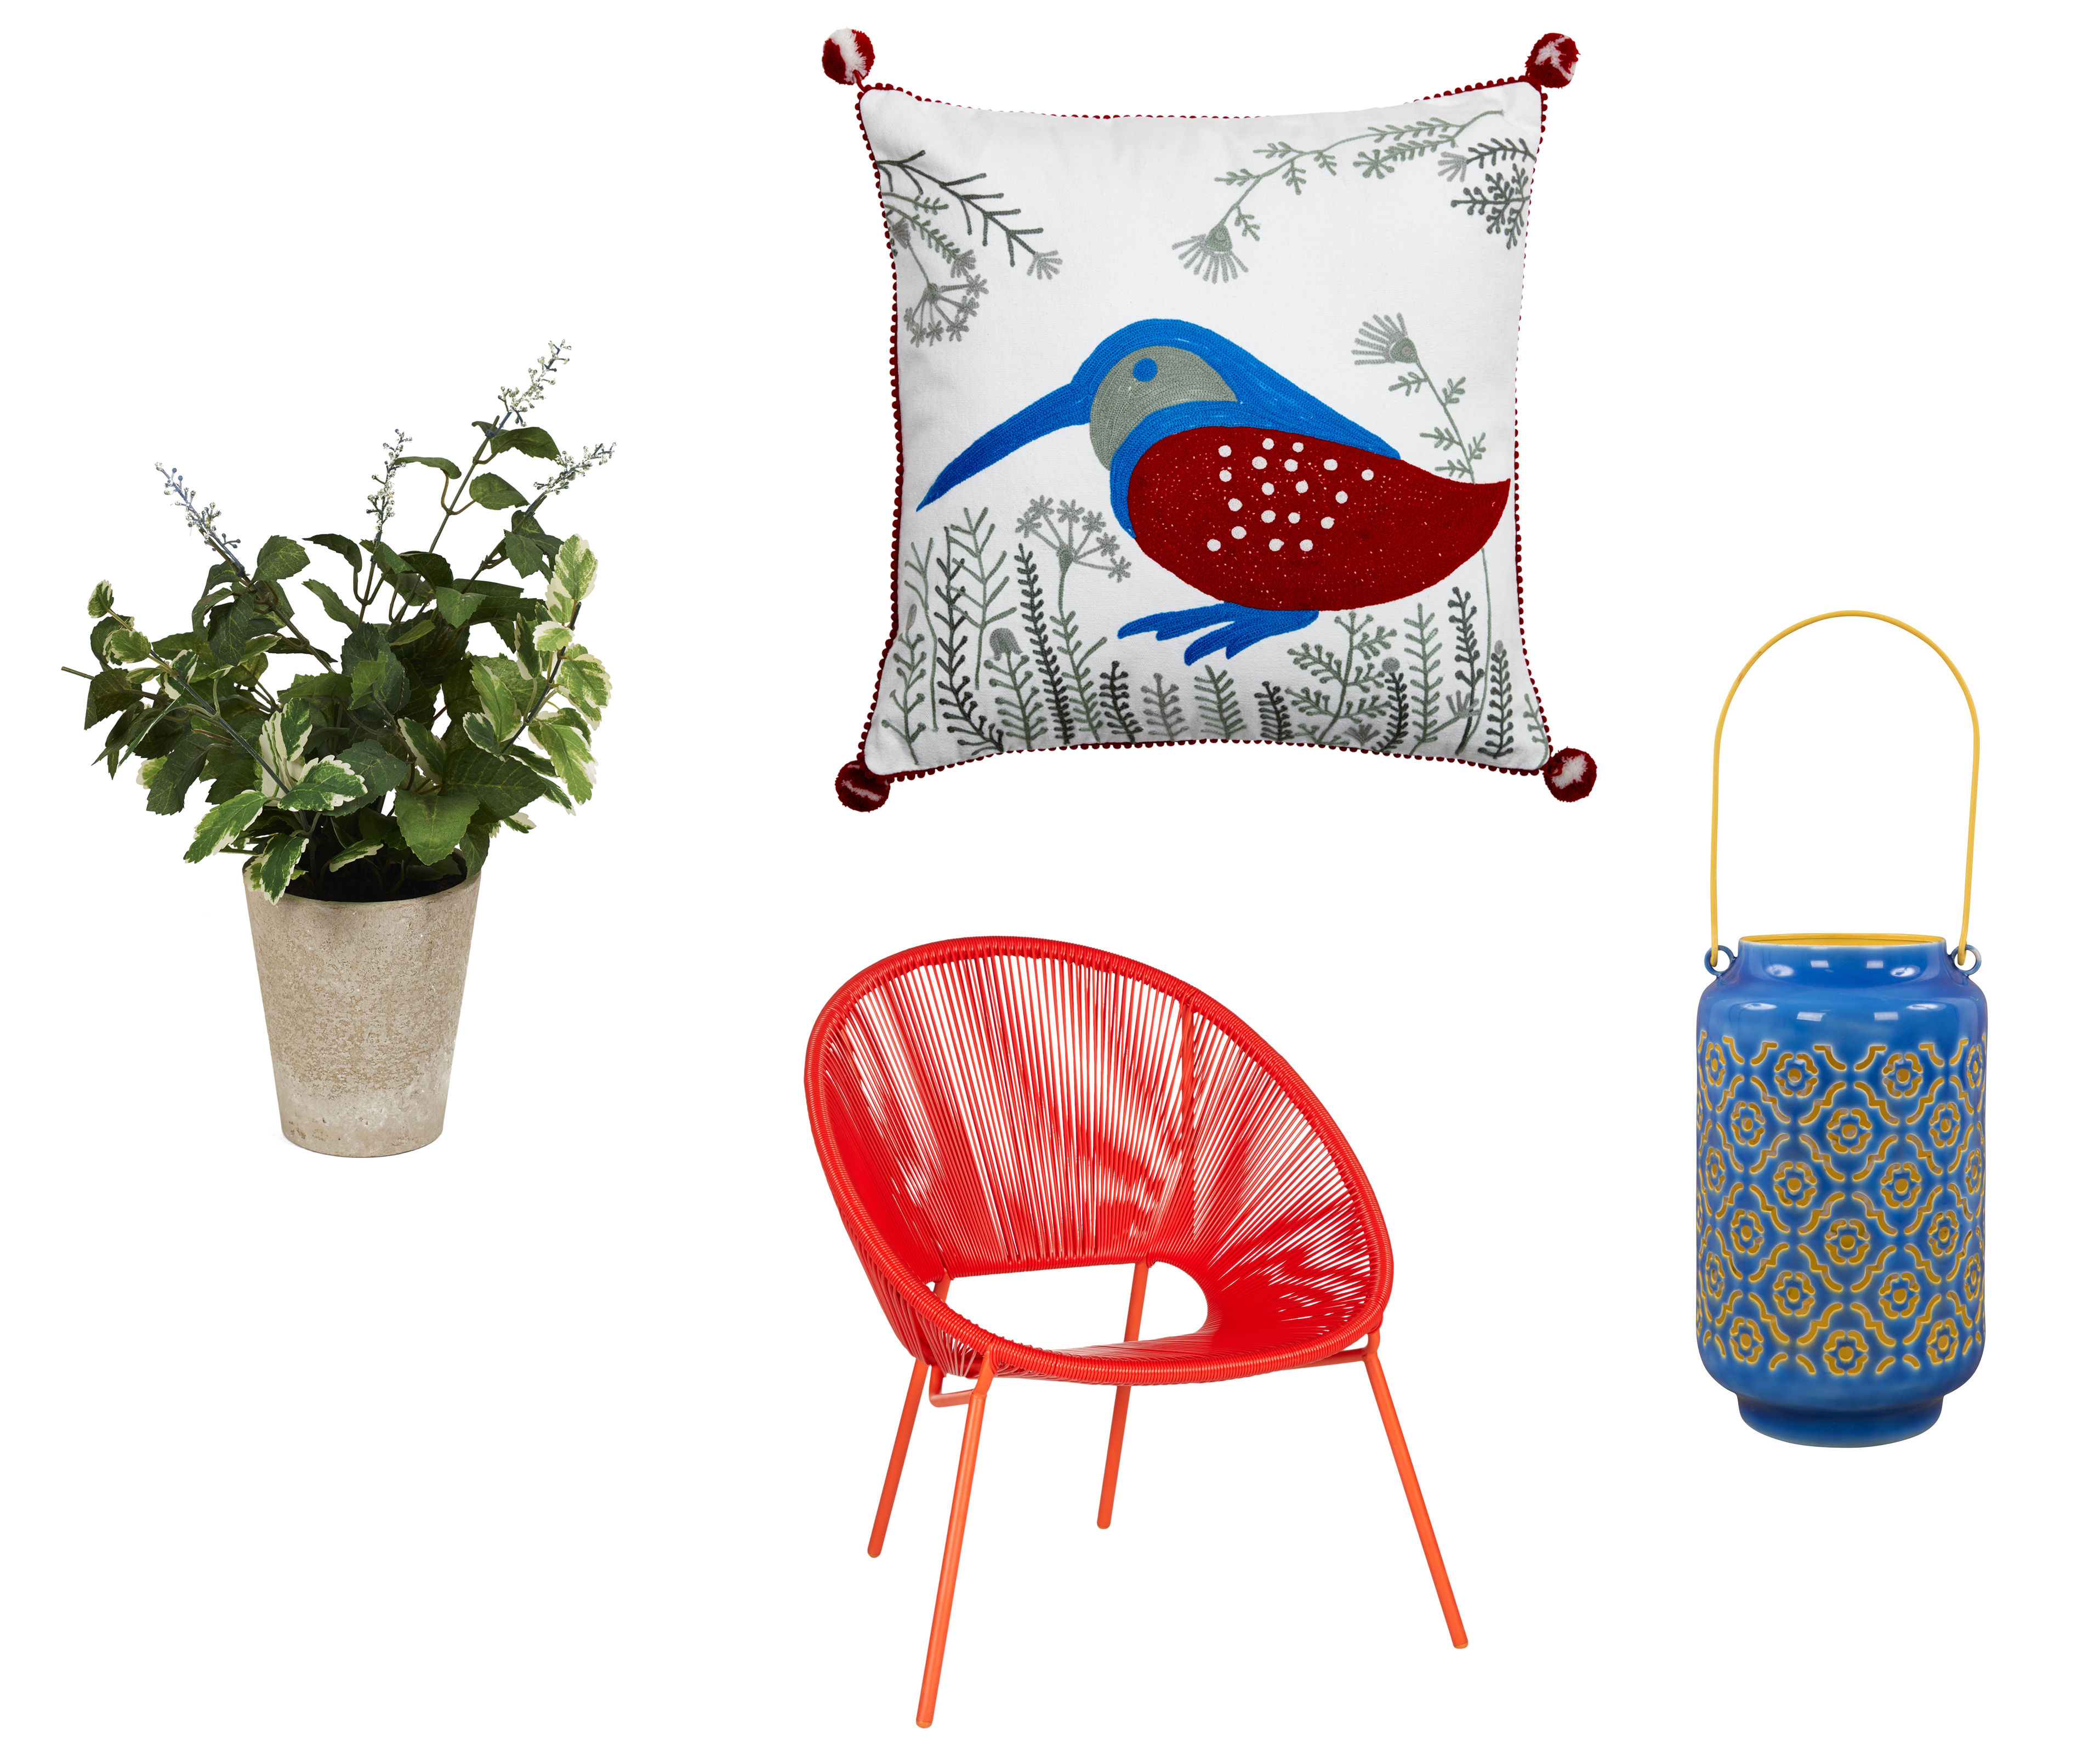 Balcony buys: (Clockwise from left) Faux Culpepper Flowering Herb, £16, Neptune; Kingfisher Cushion, £36.95, Pignut; Enamelled Ethnic Lantern, blue, £52, Out There Interiors, and House by John Lewis Salsa Garden Chair in Chilli, £120 for set of two (Neptune/Pignut/Out There Interiors/John Lewis/PA)